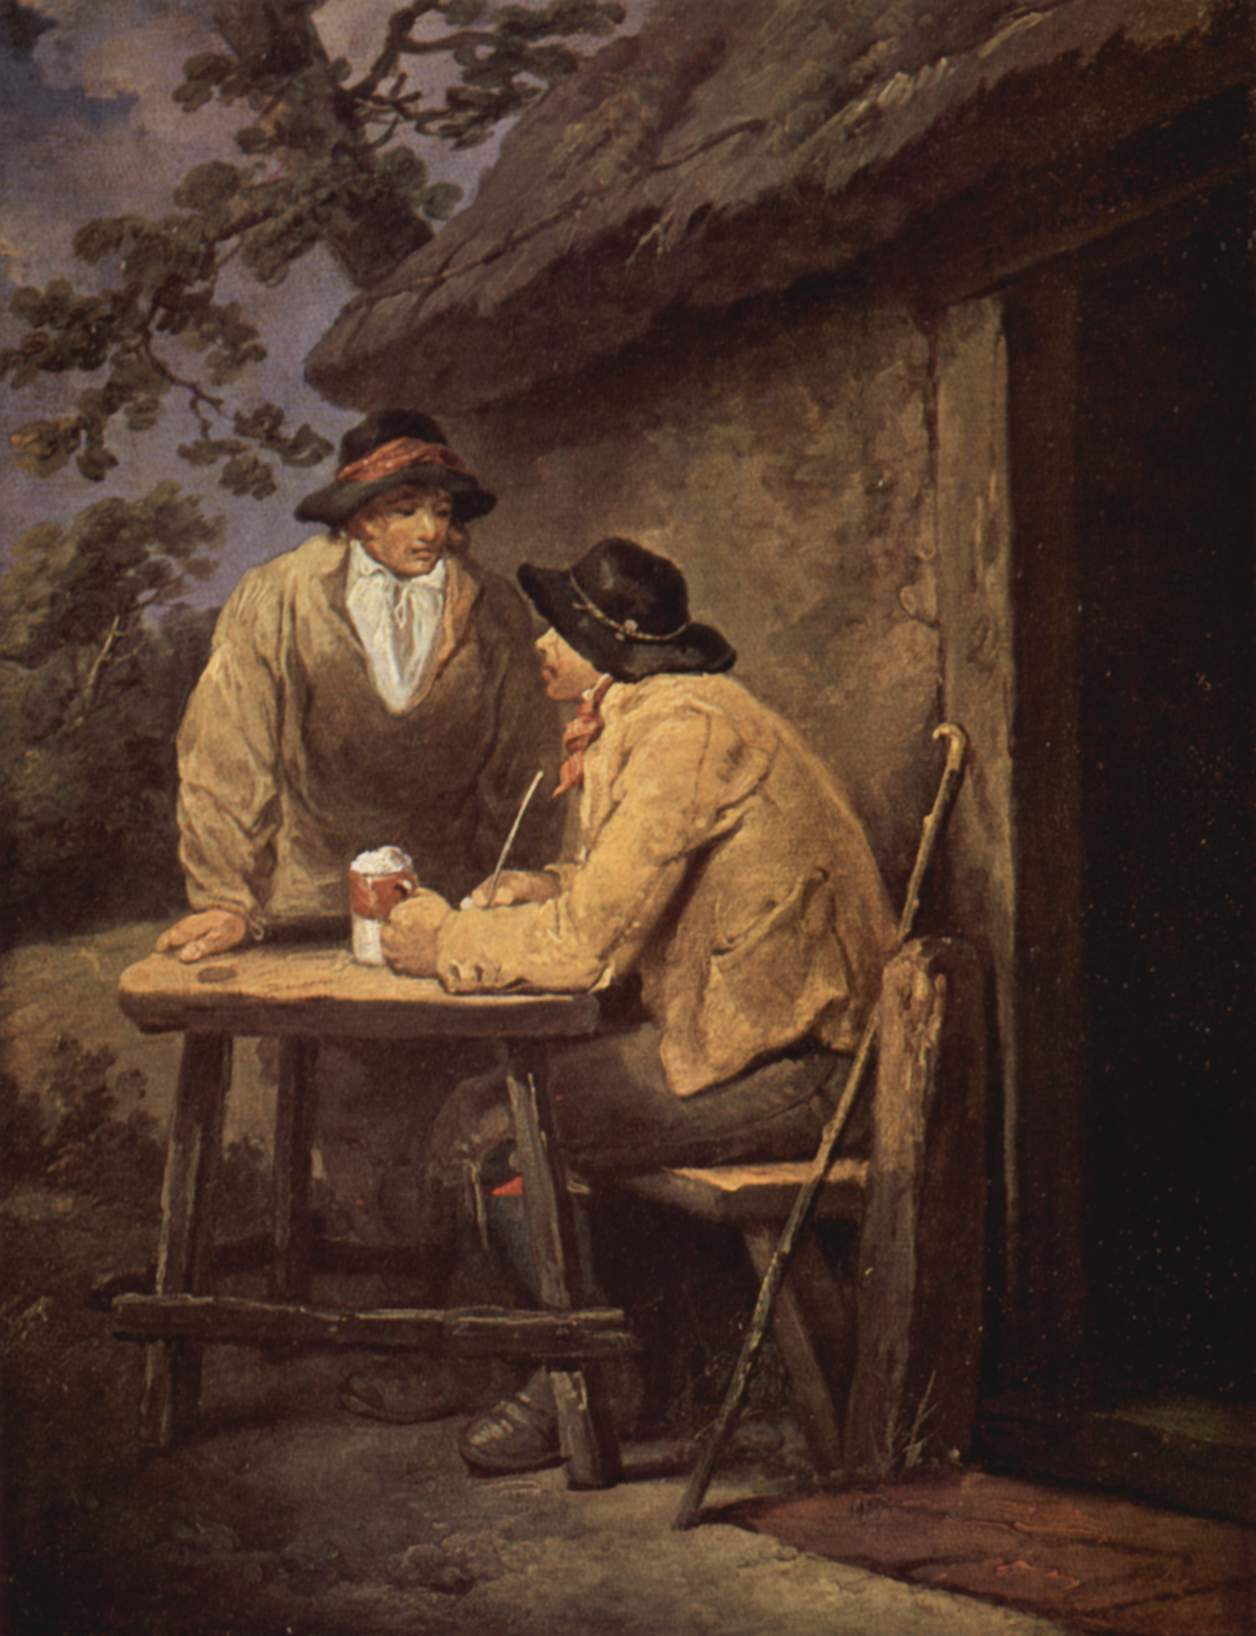 Two 18th century farmers in front of a tavern